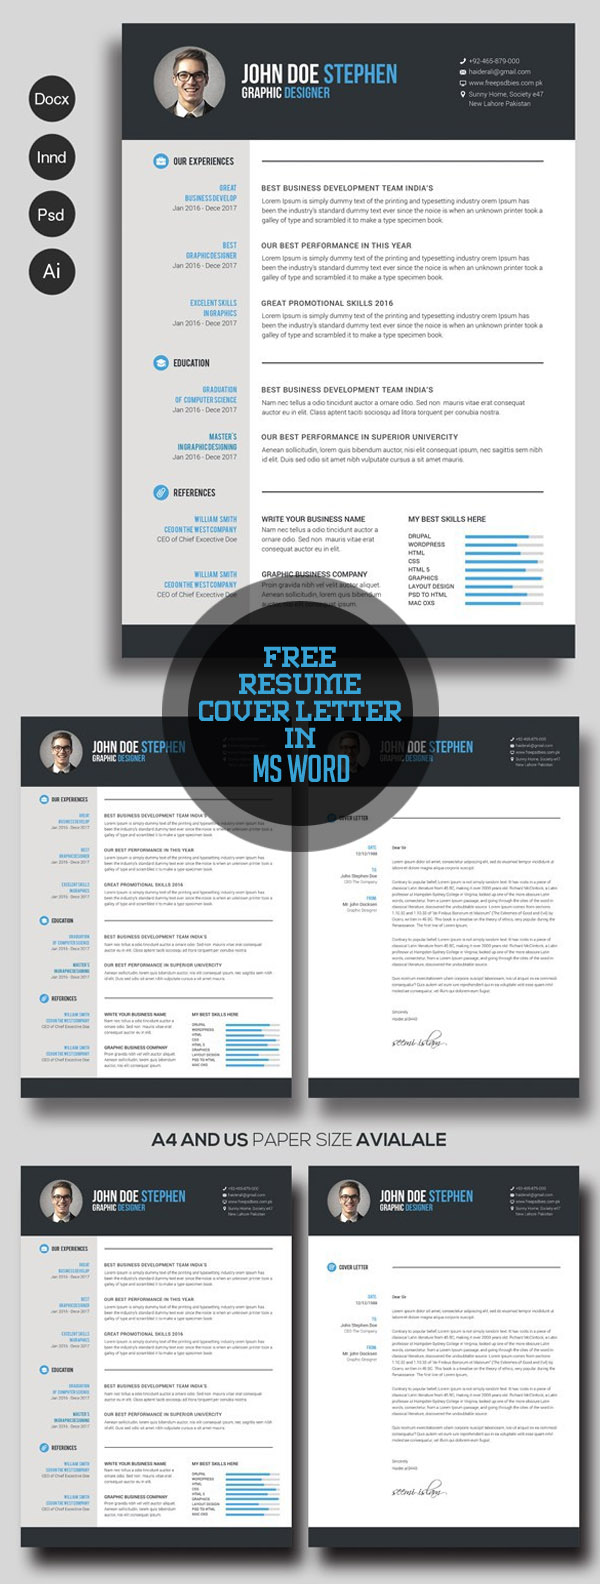 20 free cv resume templates 2017 freebies graphic design junction free resume cover letter in ms word flashek Image collections